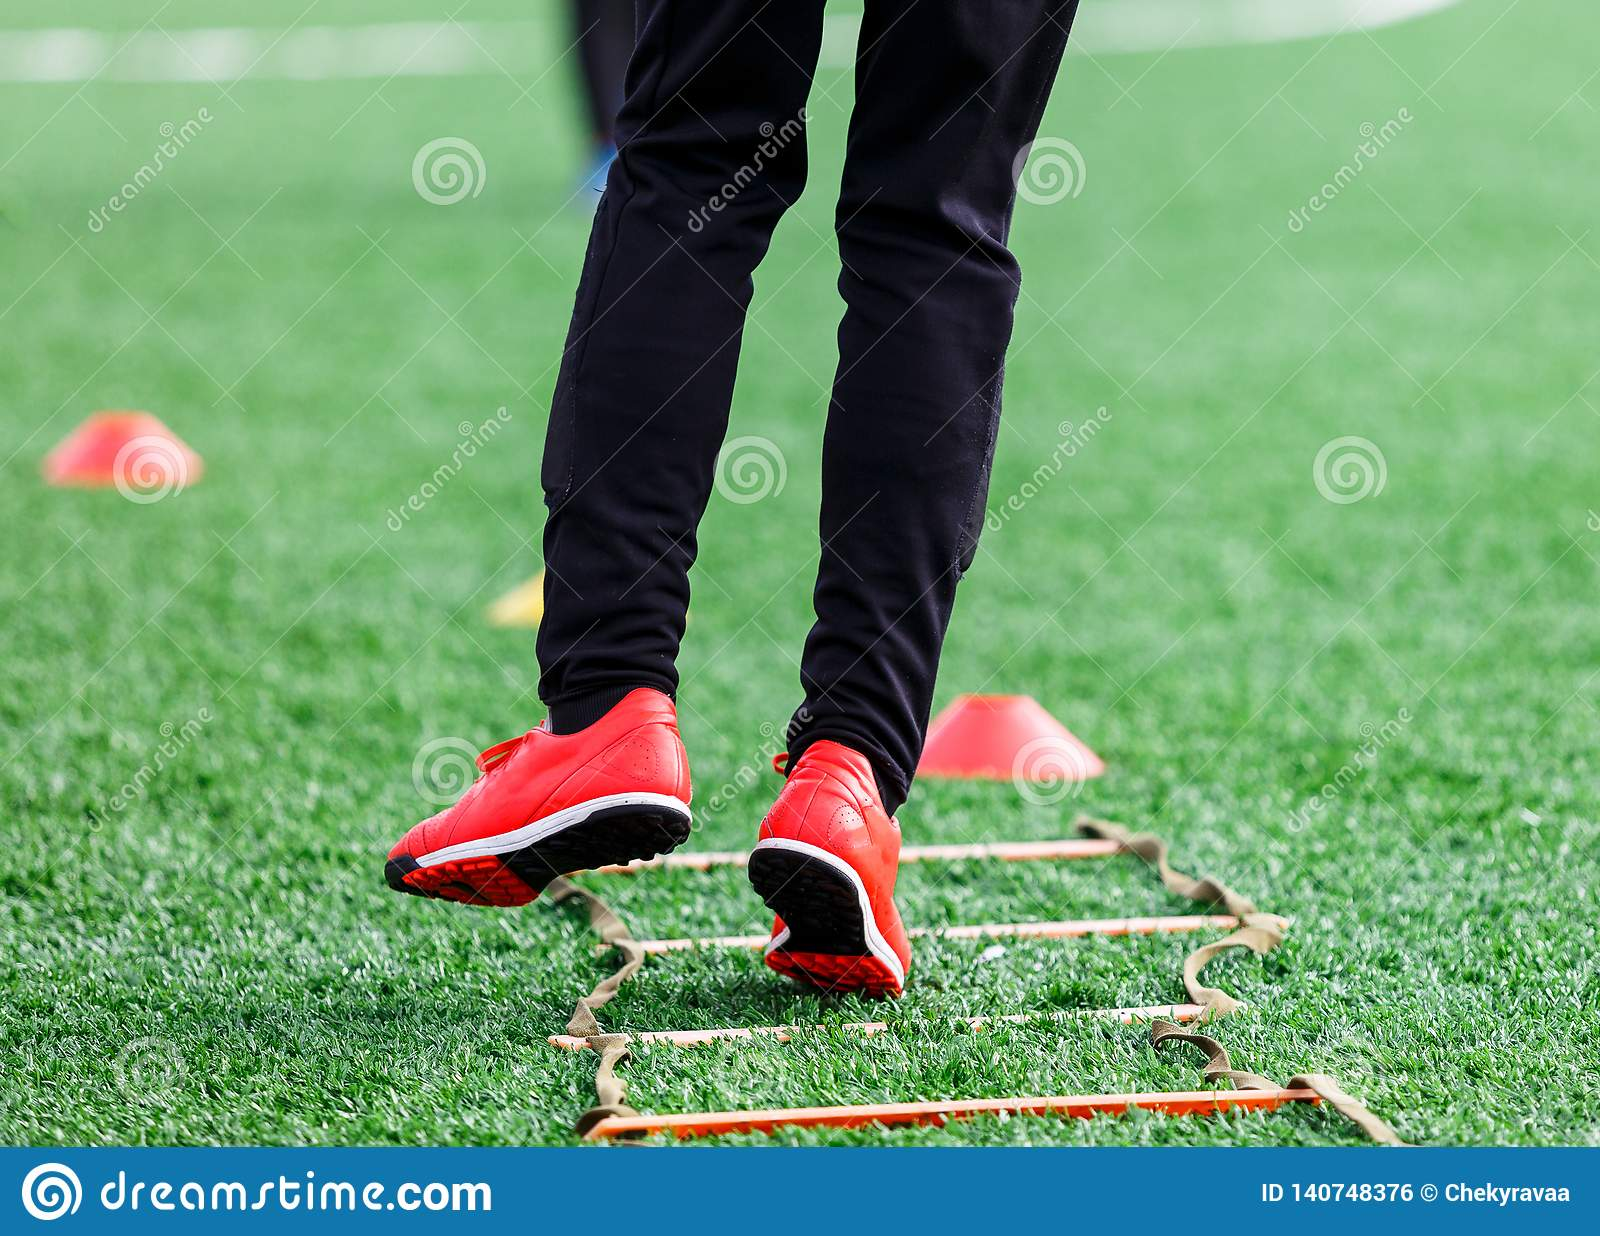 Boys in sportswear running on soccer field. Young footballers dribble . Training, active lifestyle, sport, children activity